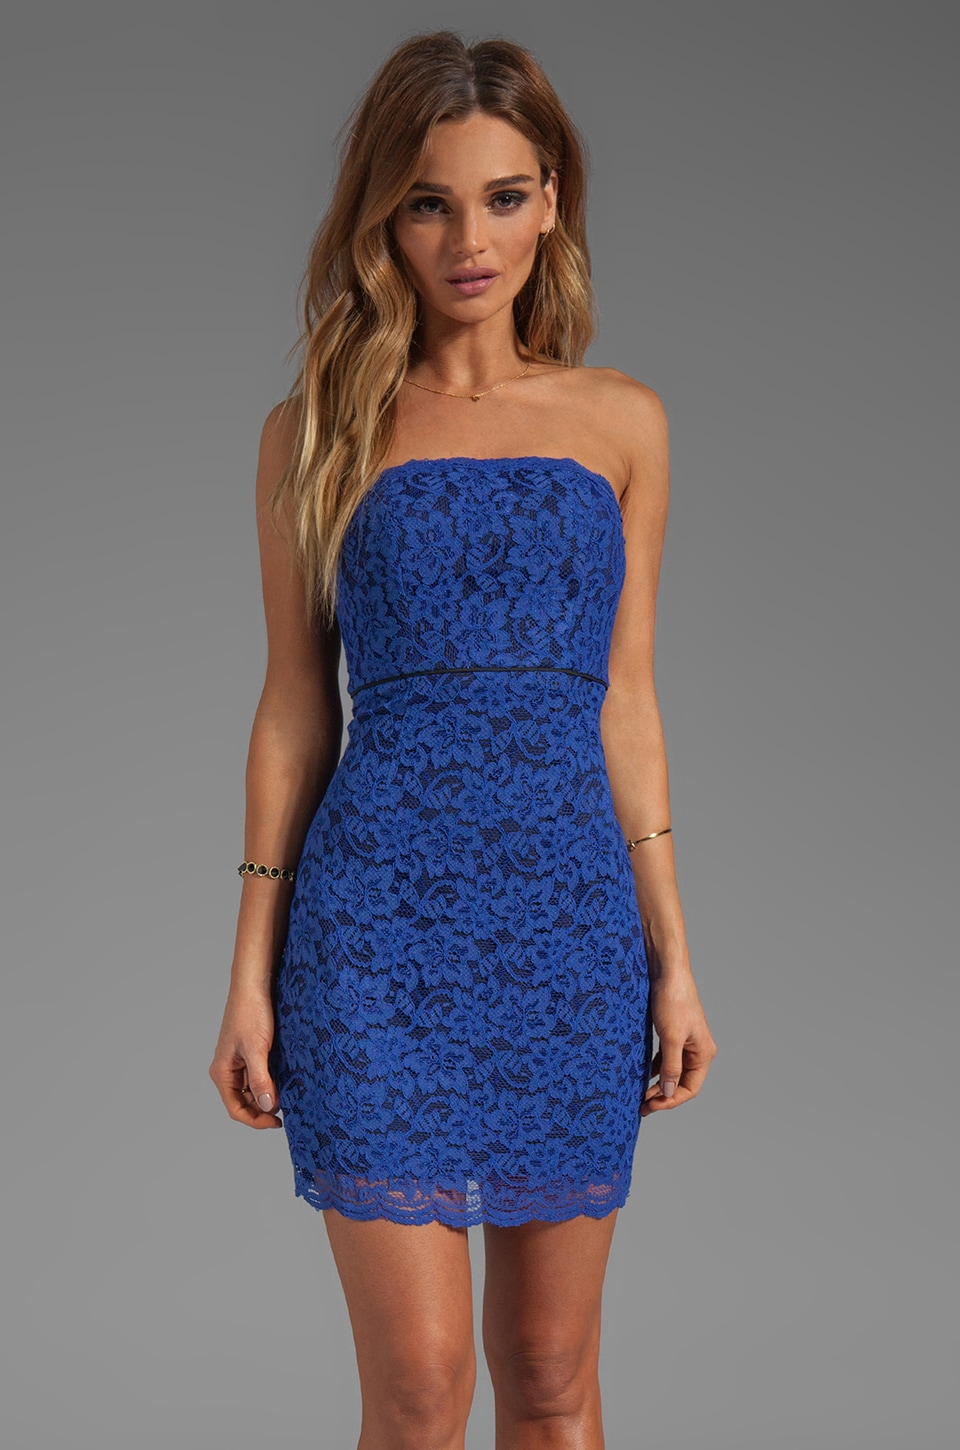 Diane von Furstenberg Walker Dress in Vivid Blue/Black